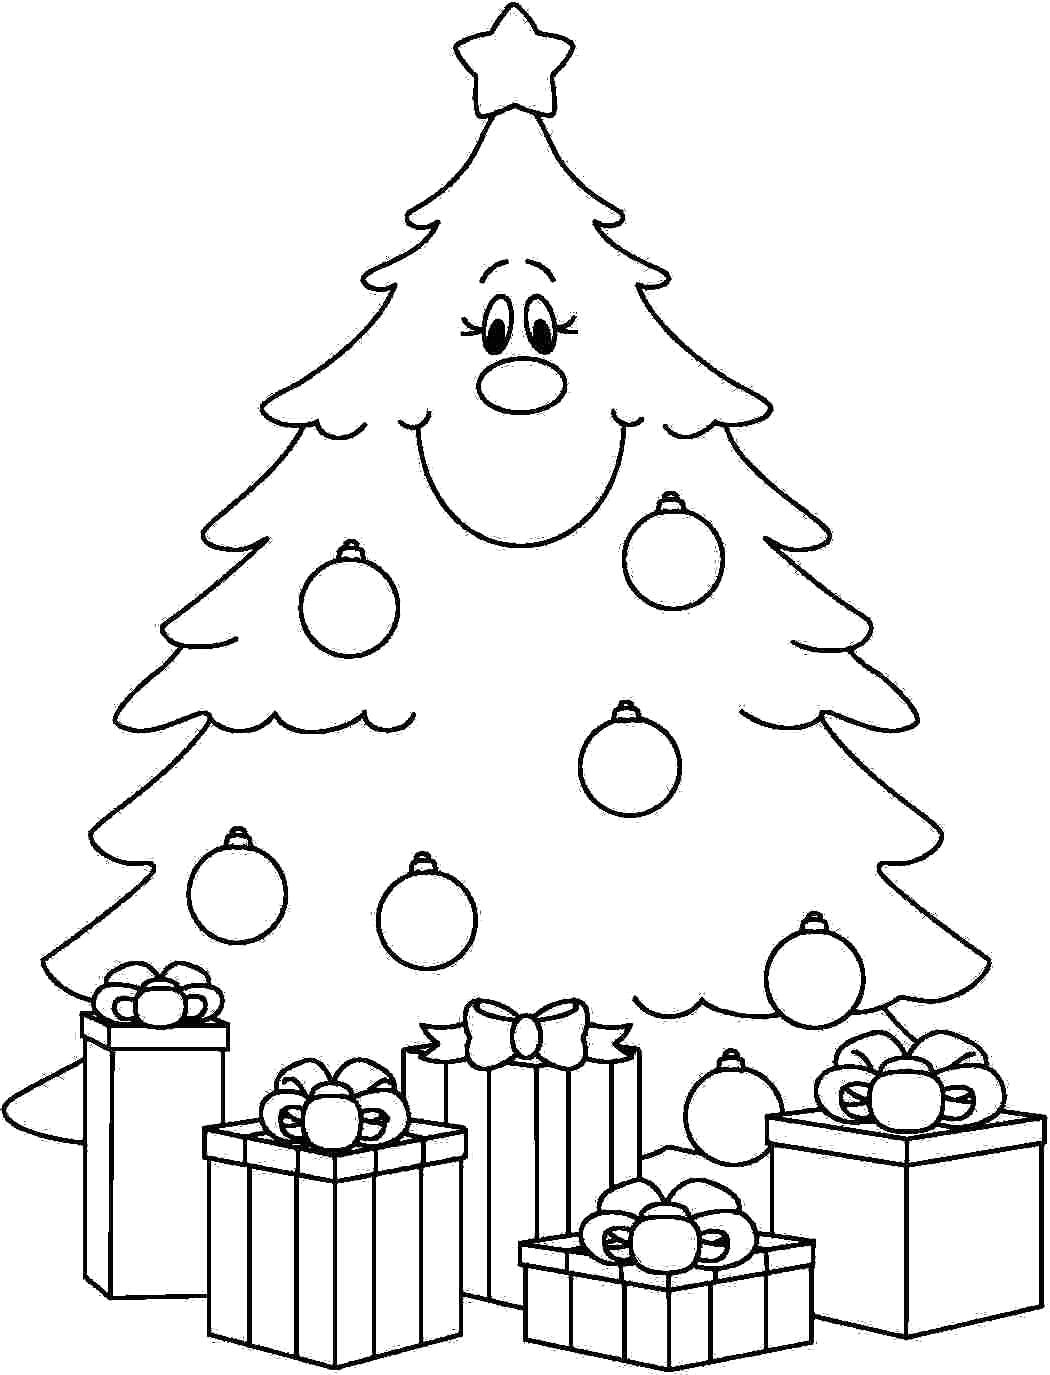 1050x1375 Christmas Tree With Presents Coloring Page In Pages For Kids